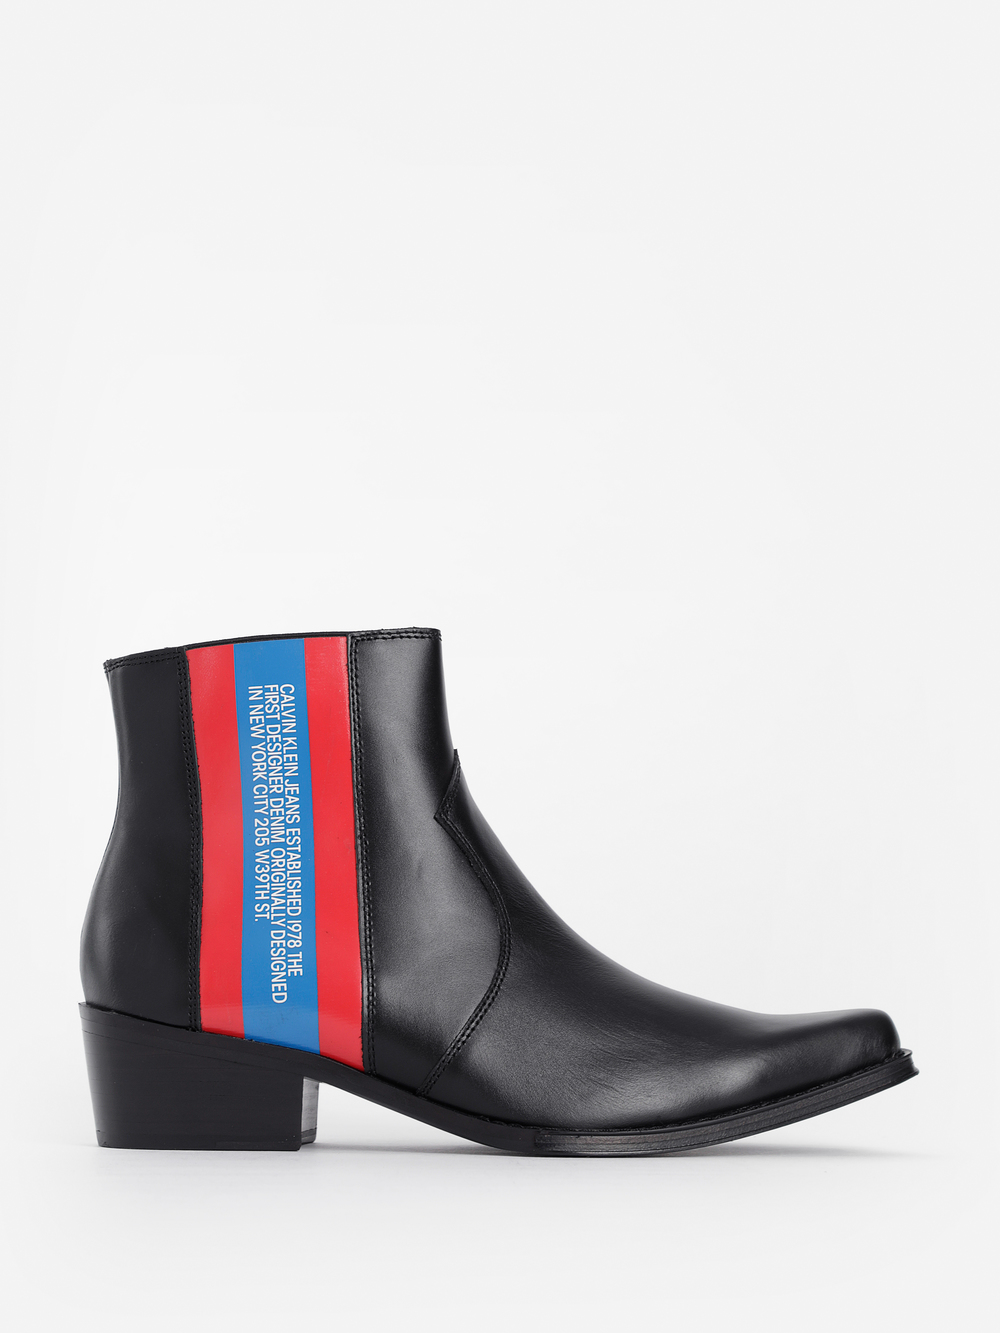 3e1f0c53a66d Calvin Klein Established 1978 - Bottes - Antonioli.eu